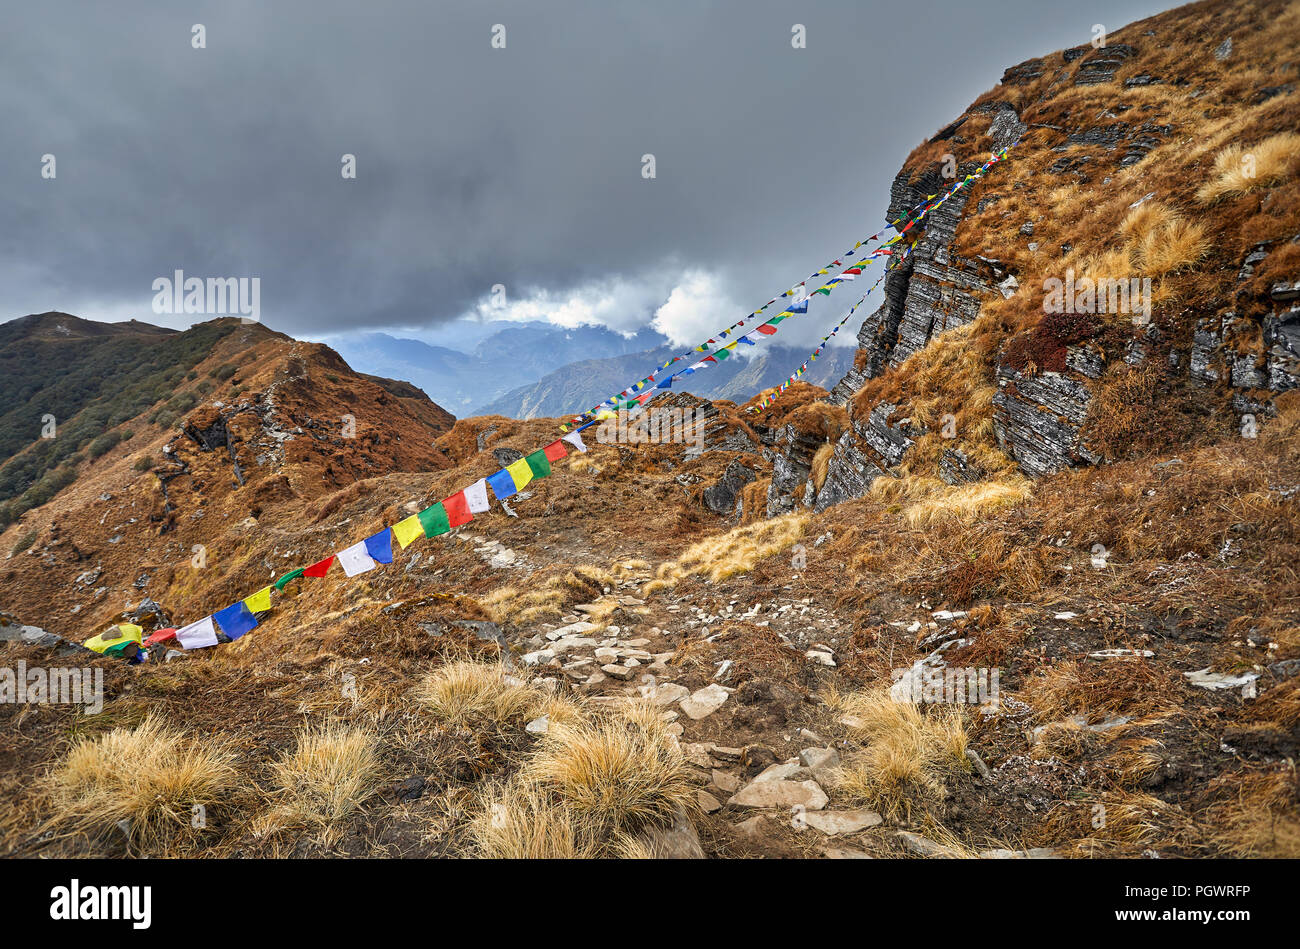 Small piles from stones and Tibetan prayer flags Lung Ta at the Mardi Himal Base Camp at cloudy peaks of Himalaya Mountains in Nepal - Stock Image